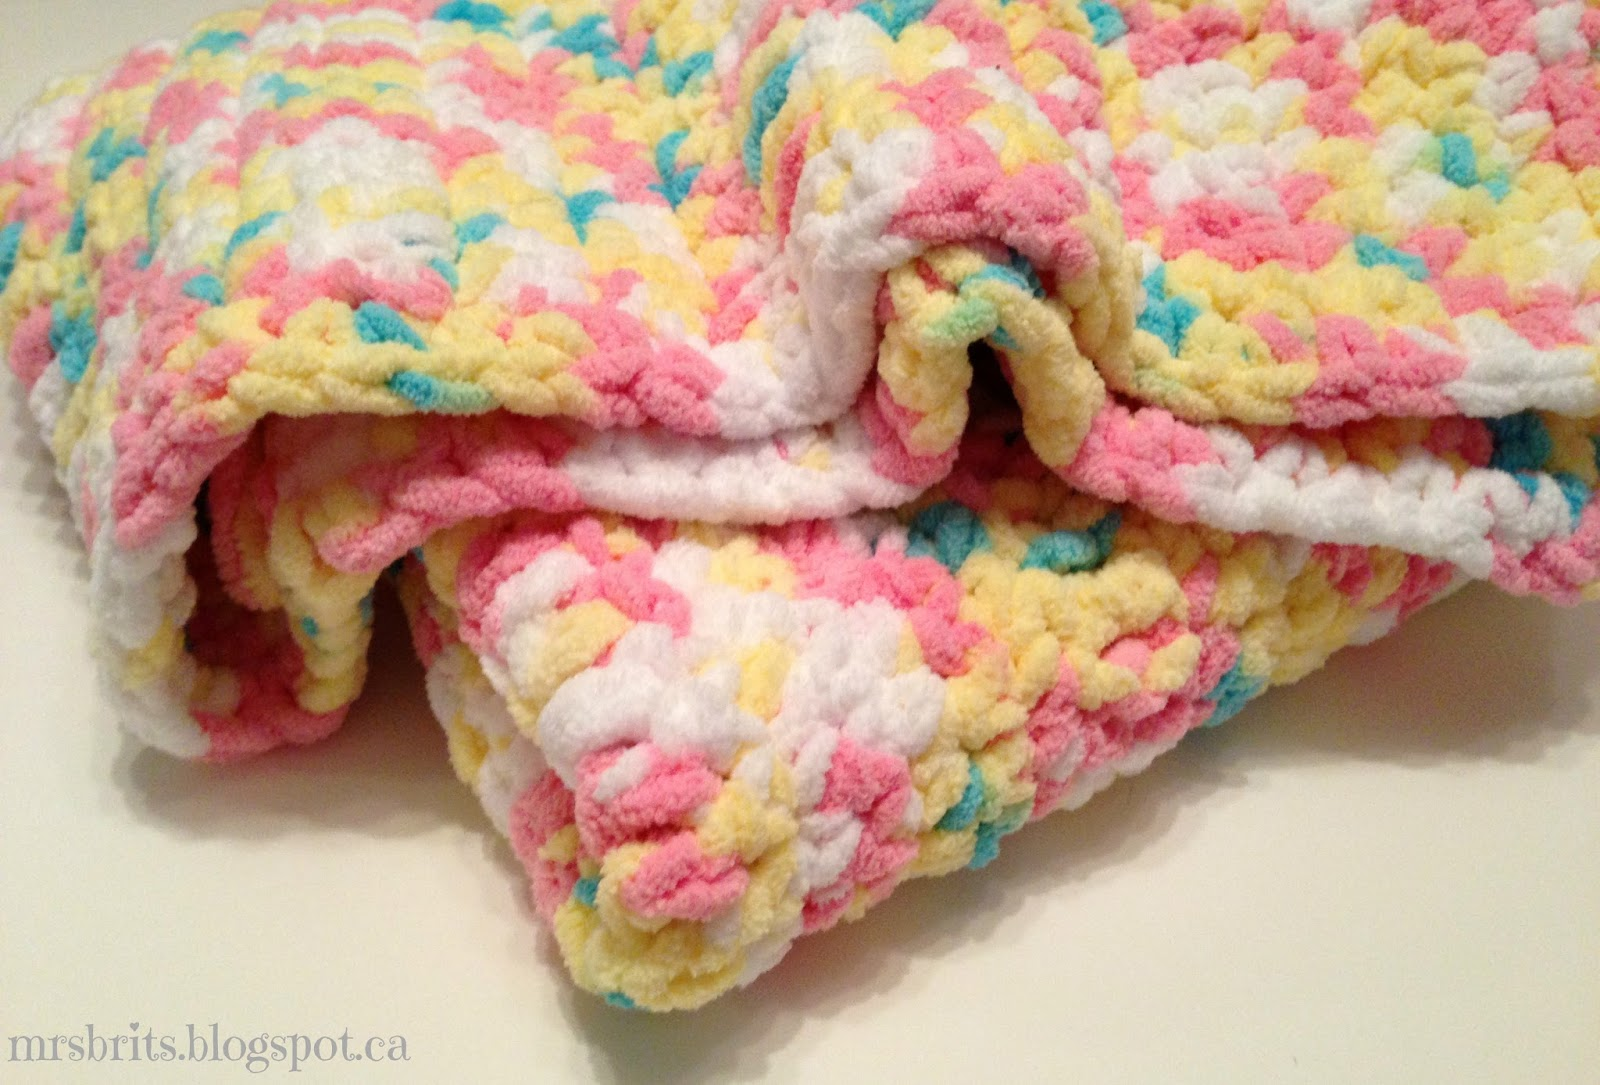 Crochet Patterns Chunky Yarn : MrsBrits: Sweet and Chunky Baby Afghan {Crochet Pattern}